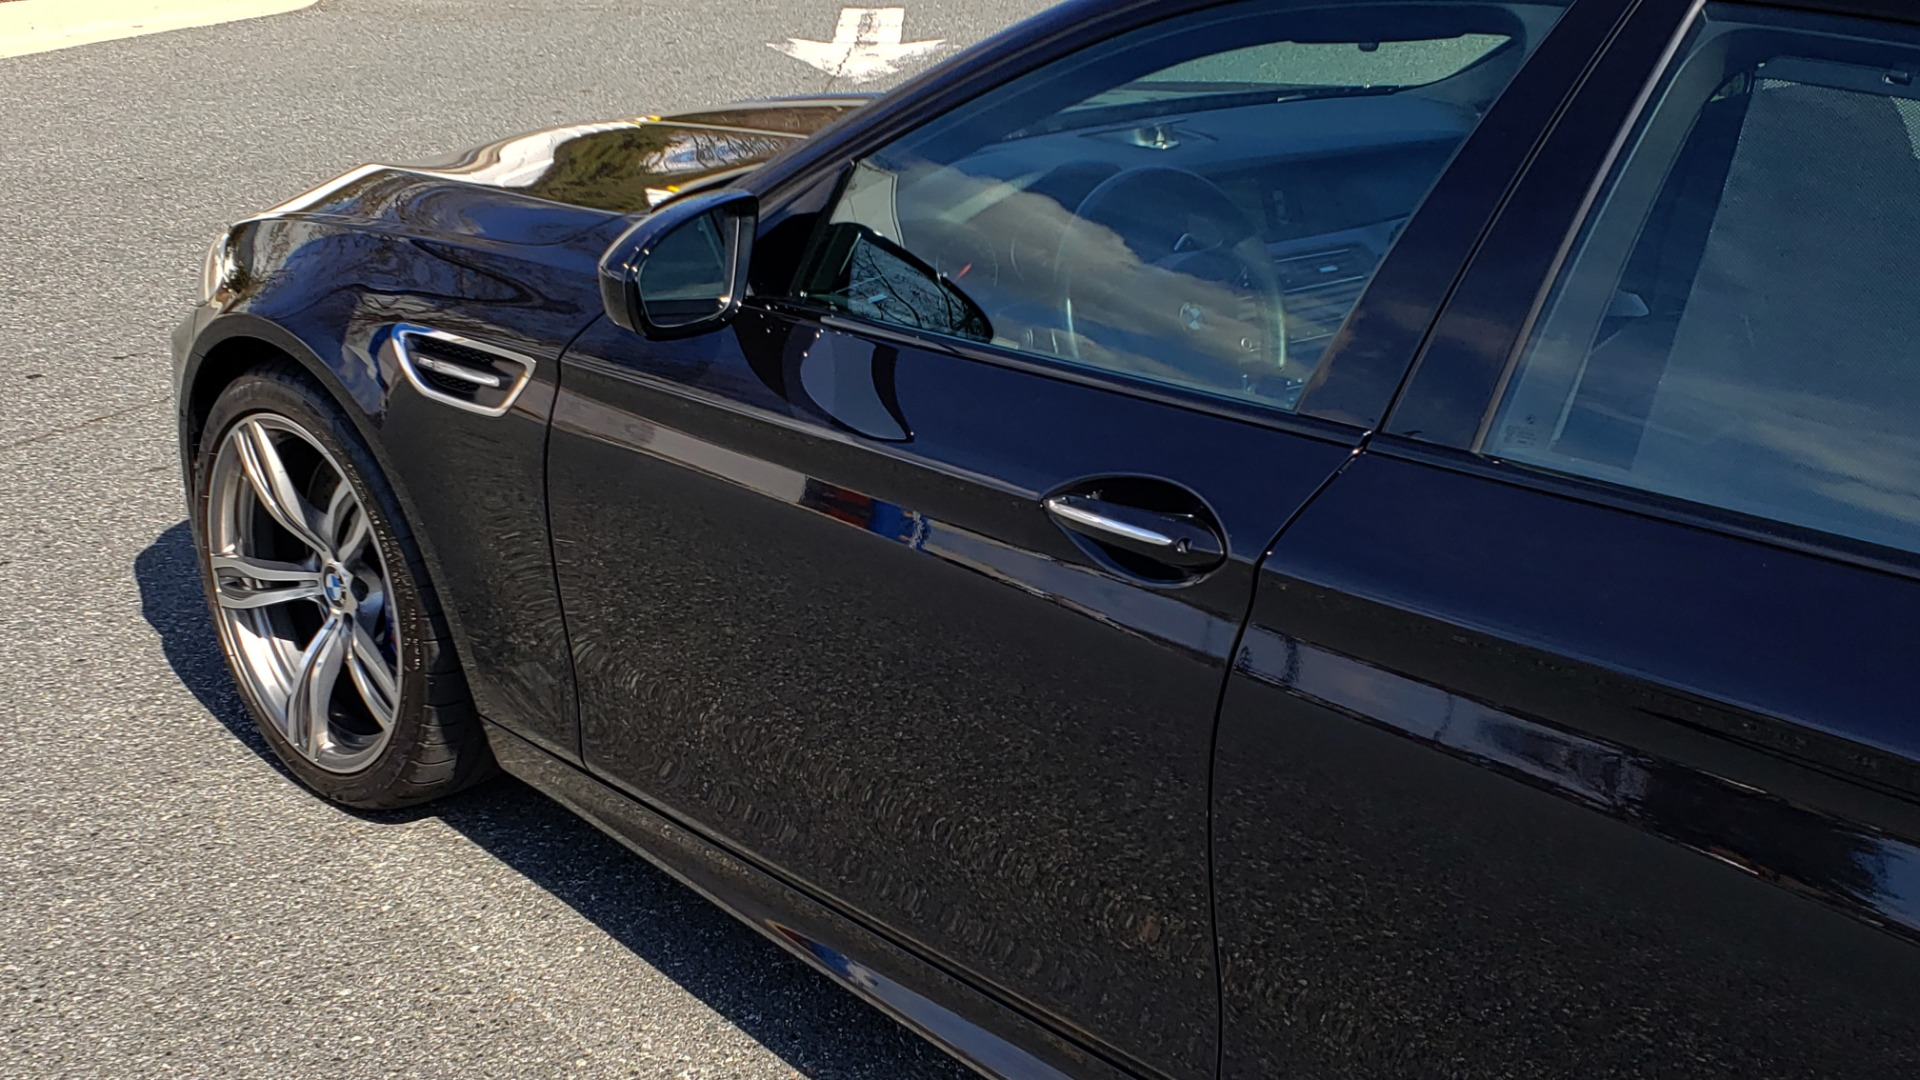 Used 2013 BMW M5 EXECUTIVE PKG / DRVR ASST / NAV / SUNROOF / REARVIEW for sale Sold at Formula Imports in Charlotte NC 28227 7